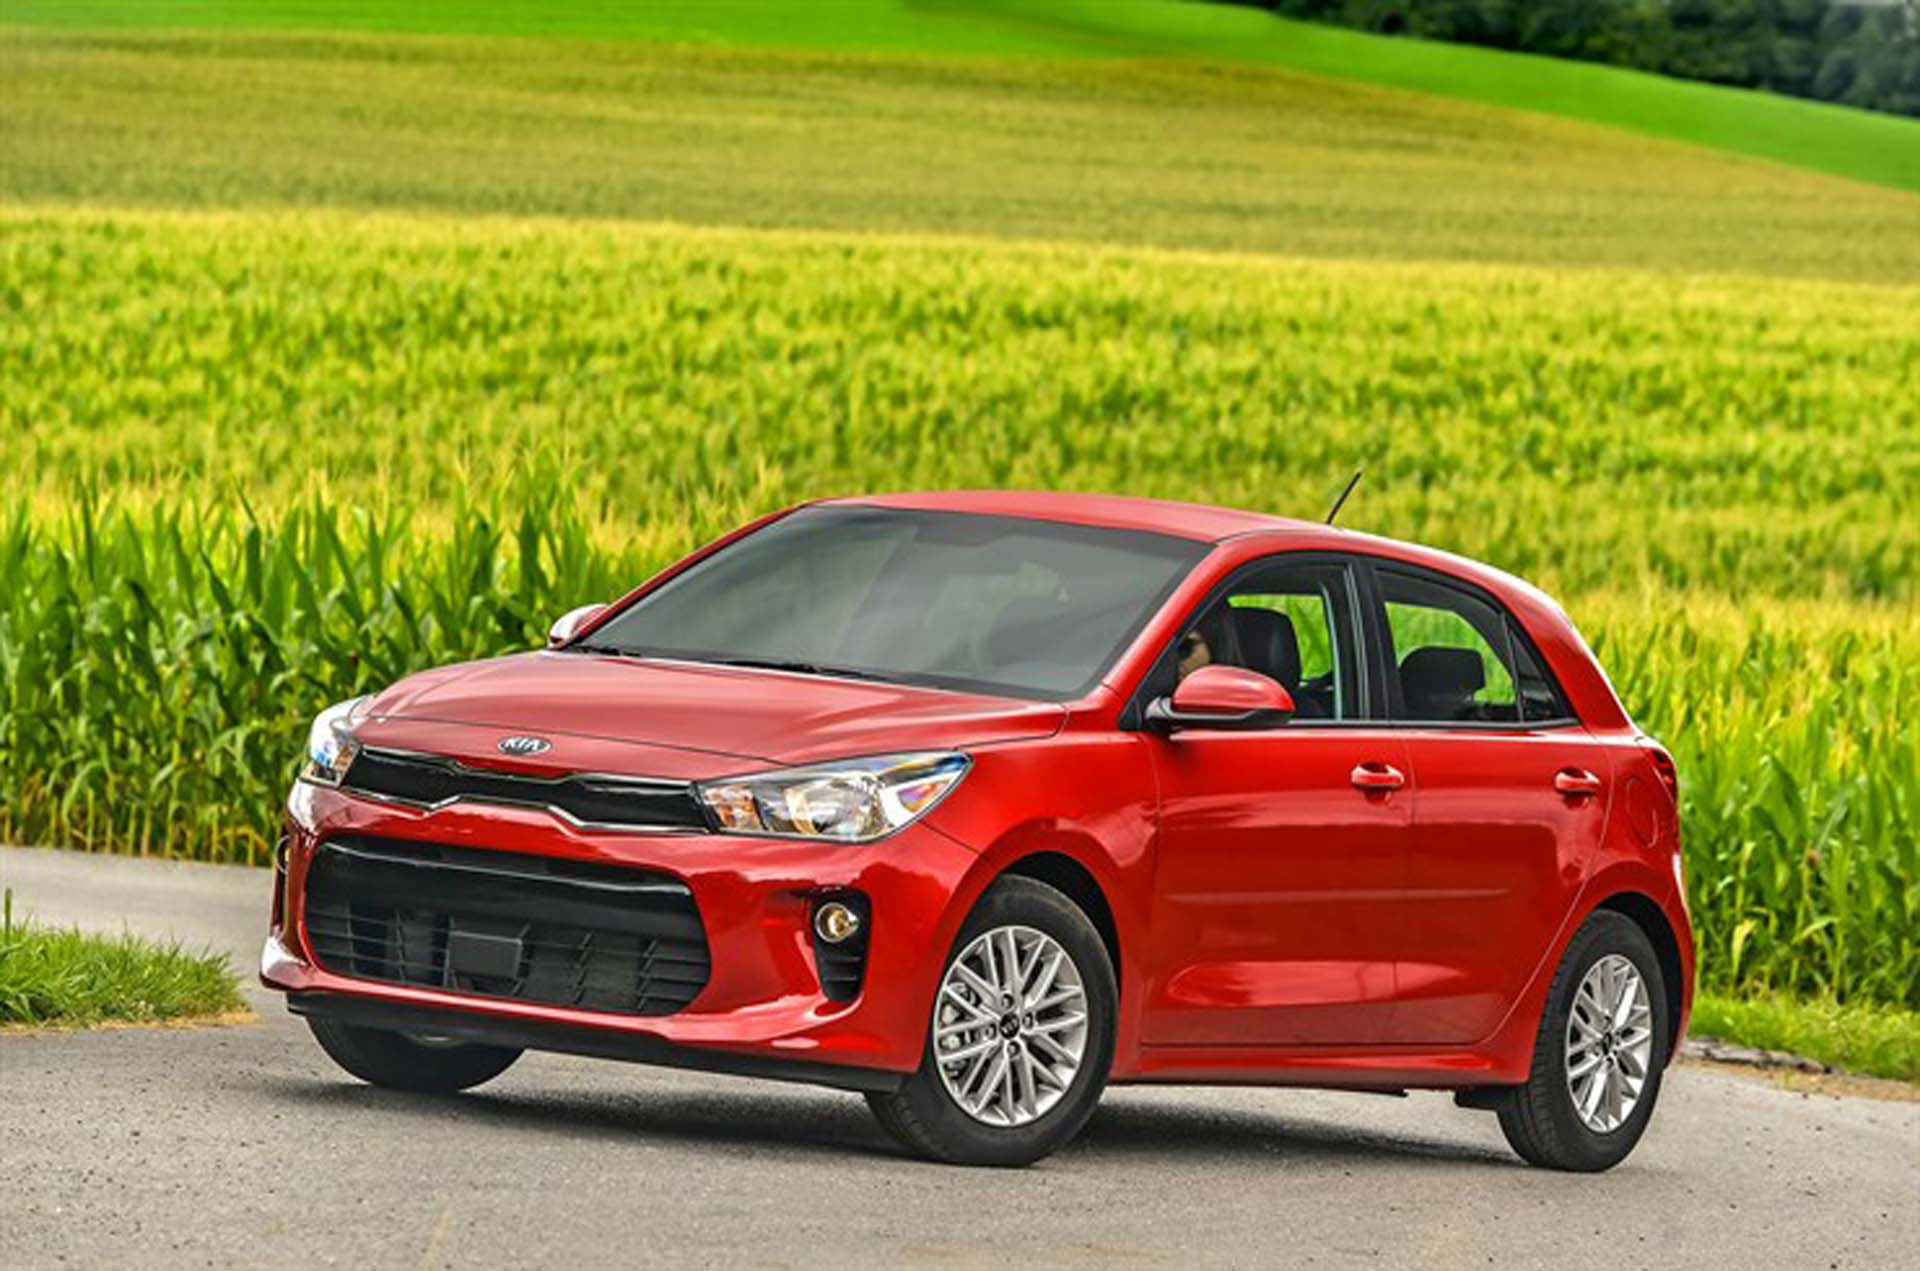 2018 Kia Rio Quality Review The Car Connection